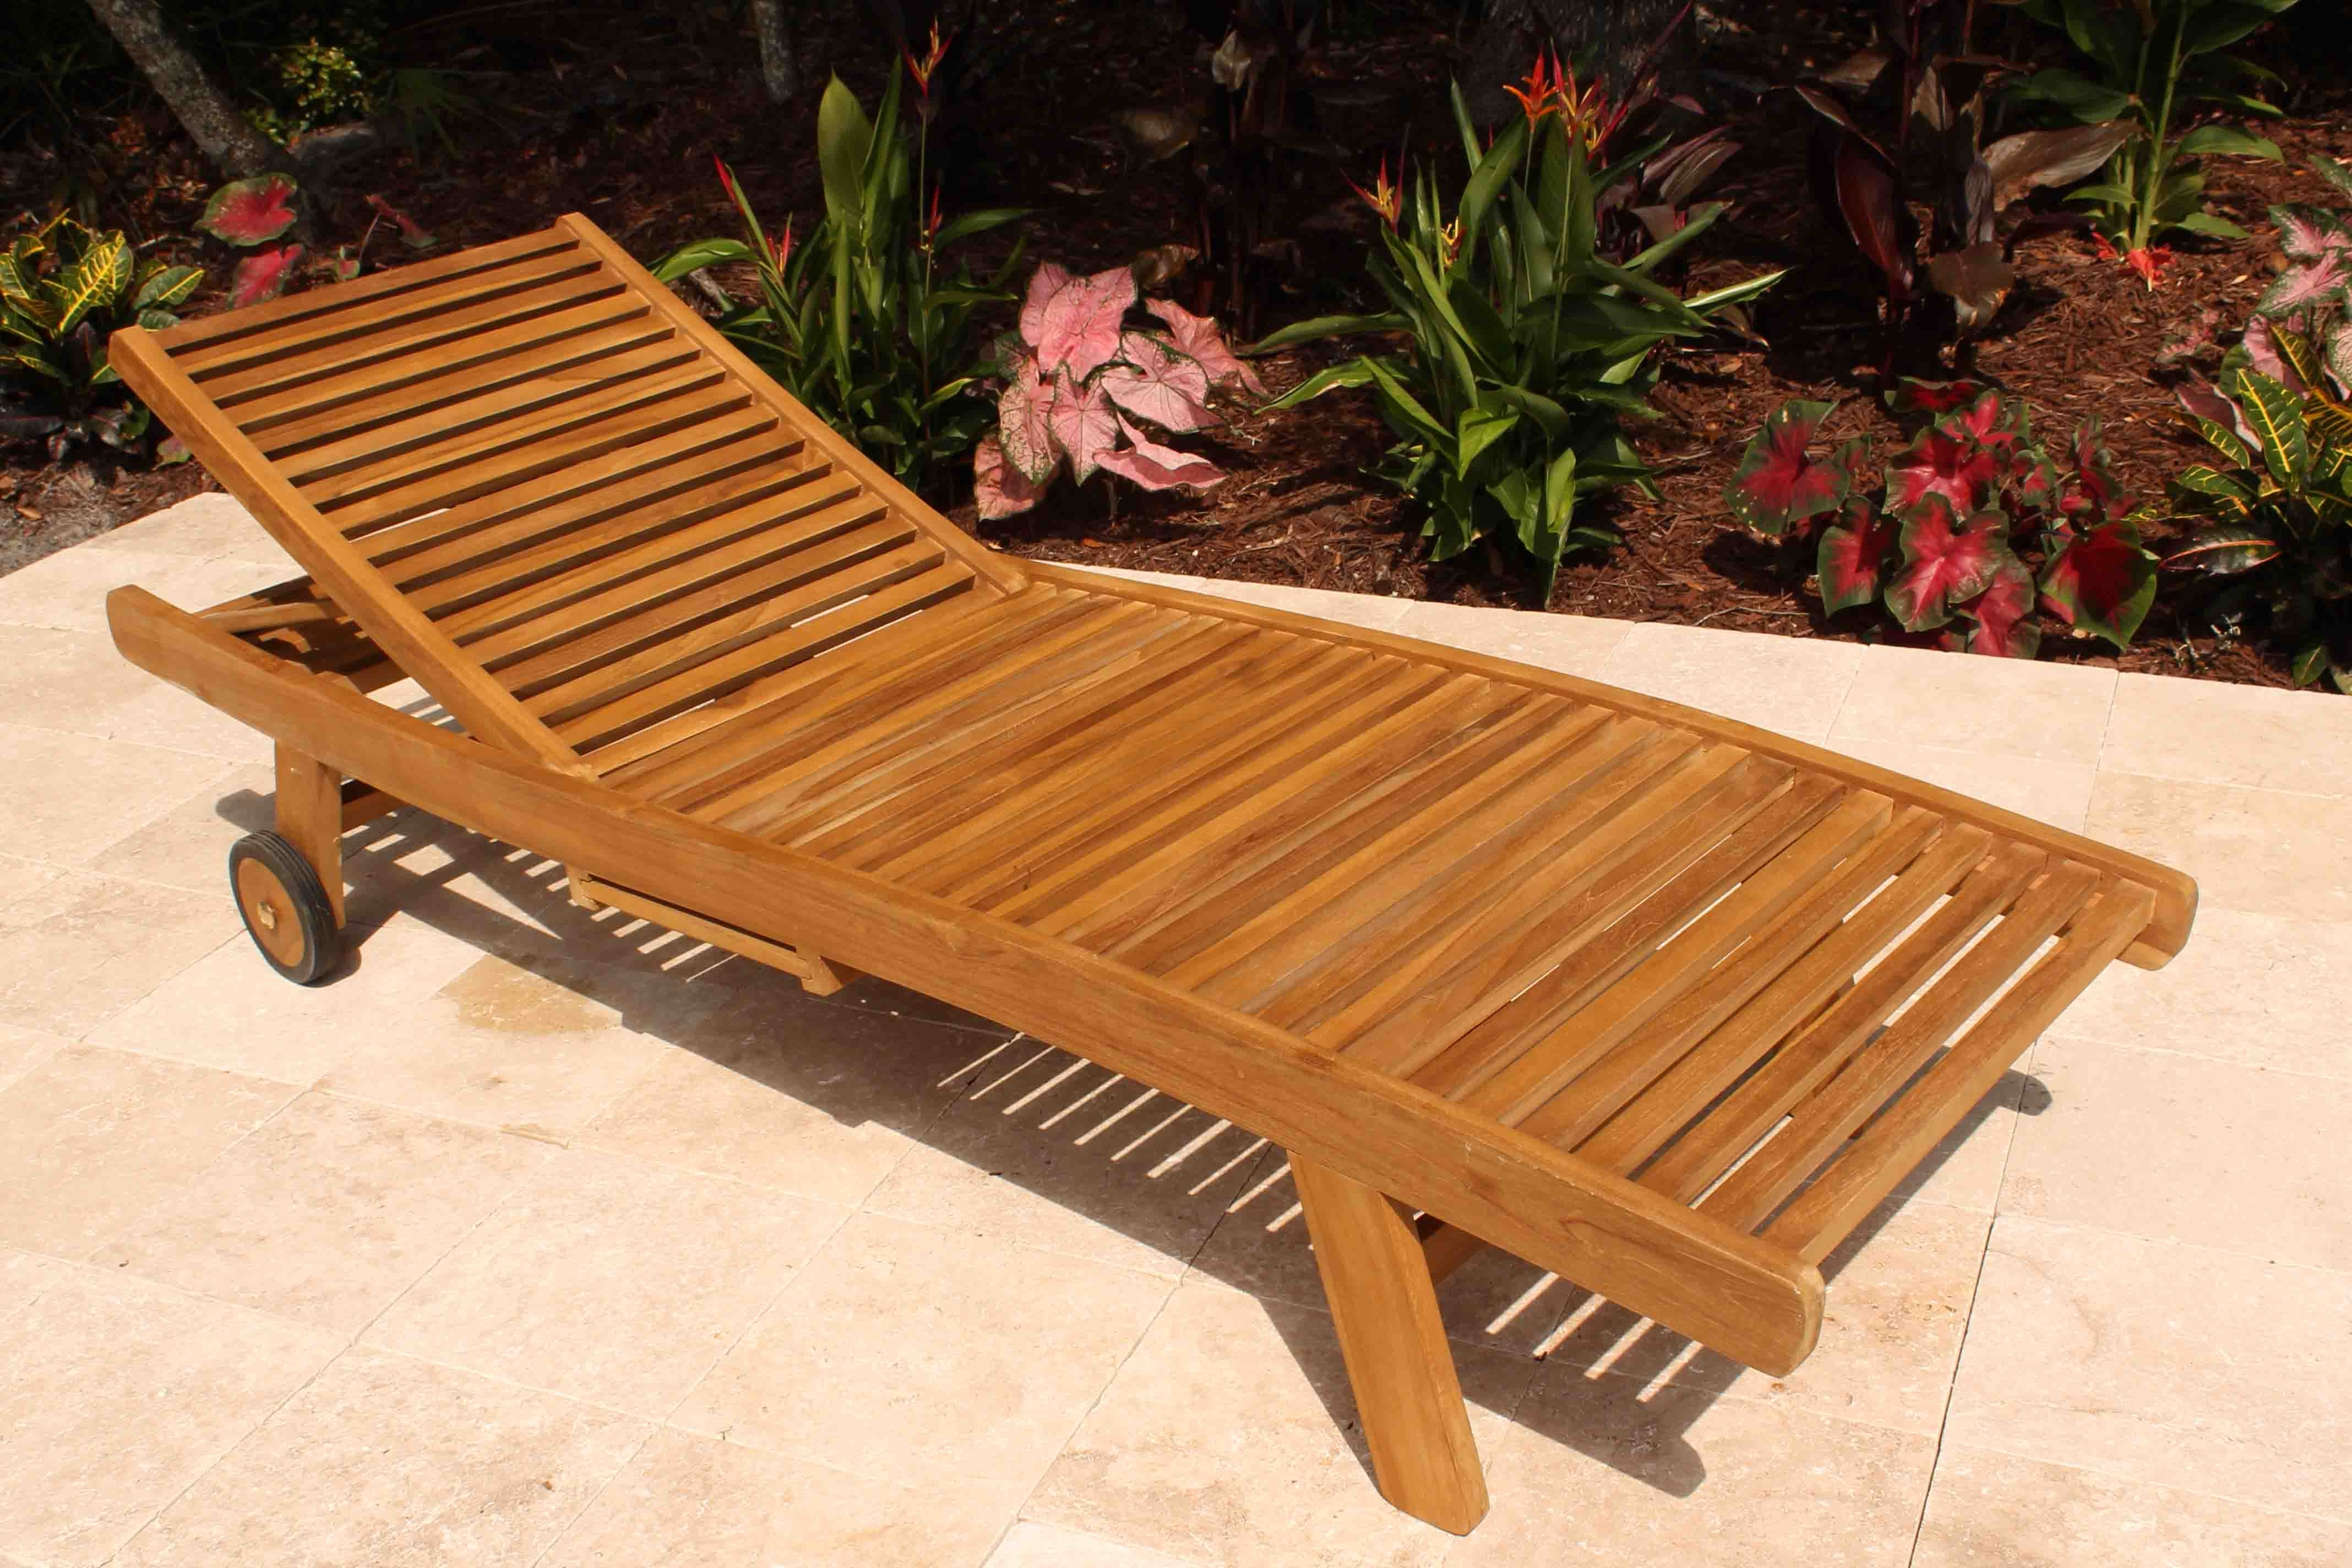 Teak Wood Chaise Lounge Chair — Teak Furnitures : Teak Chaise Throughout Fashionable Wooden Chaise Lounges (View 10 of 15)